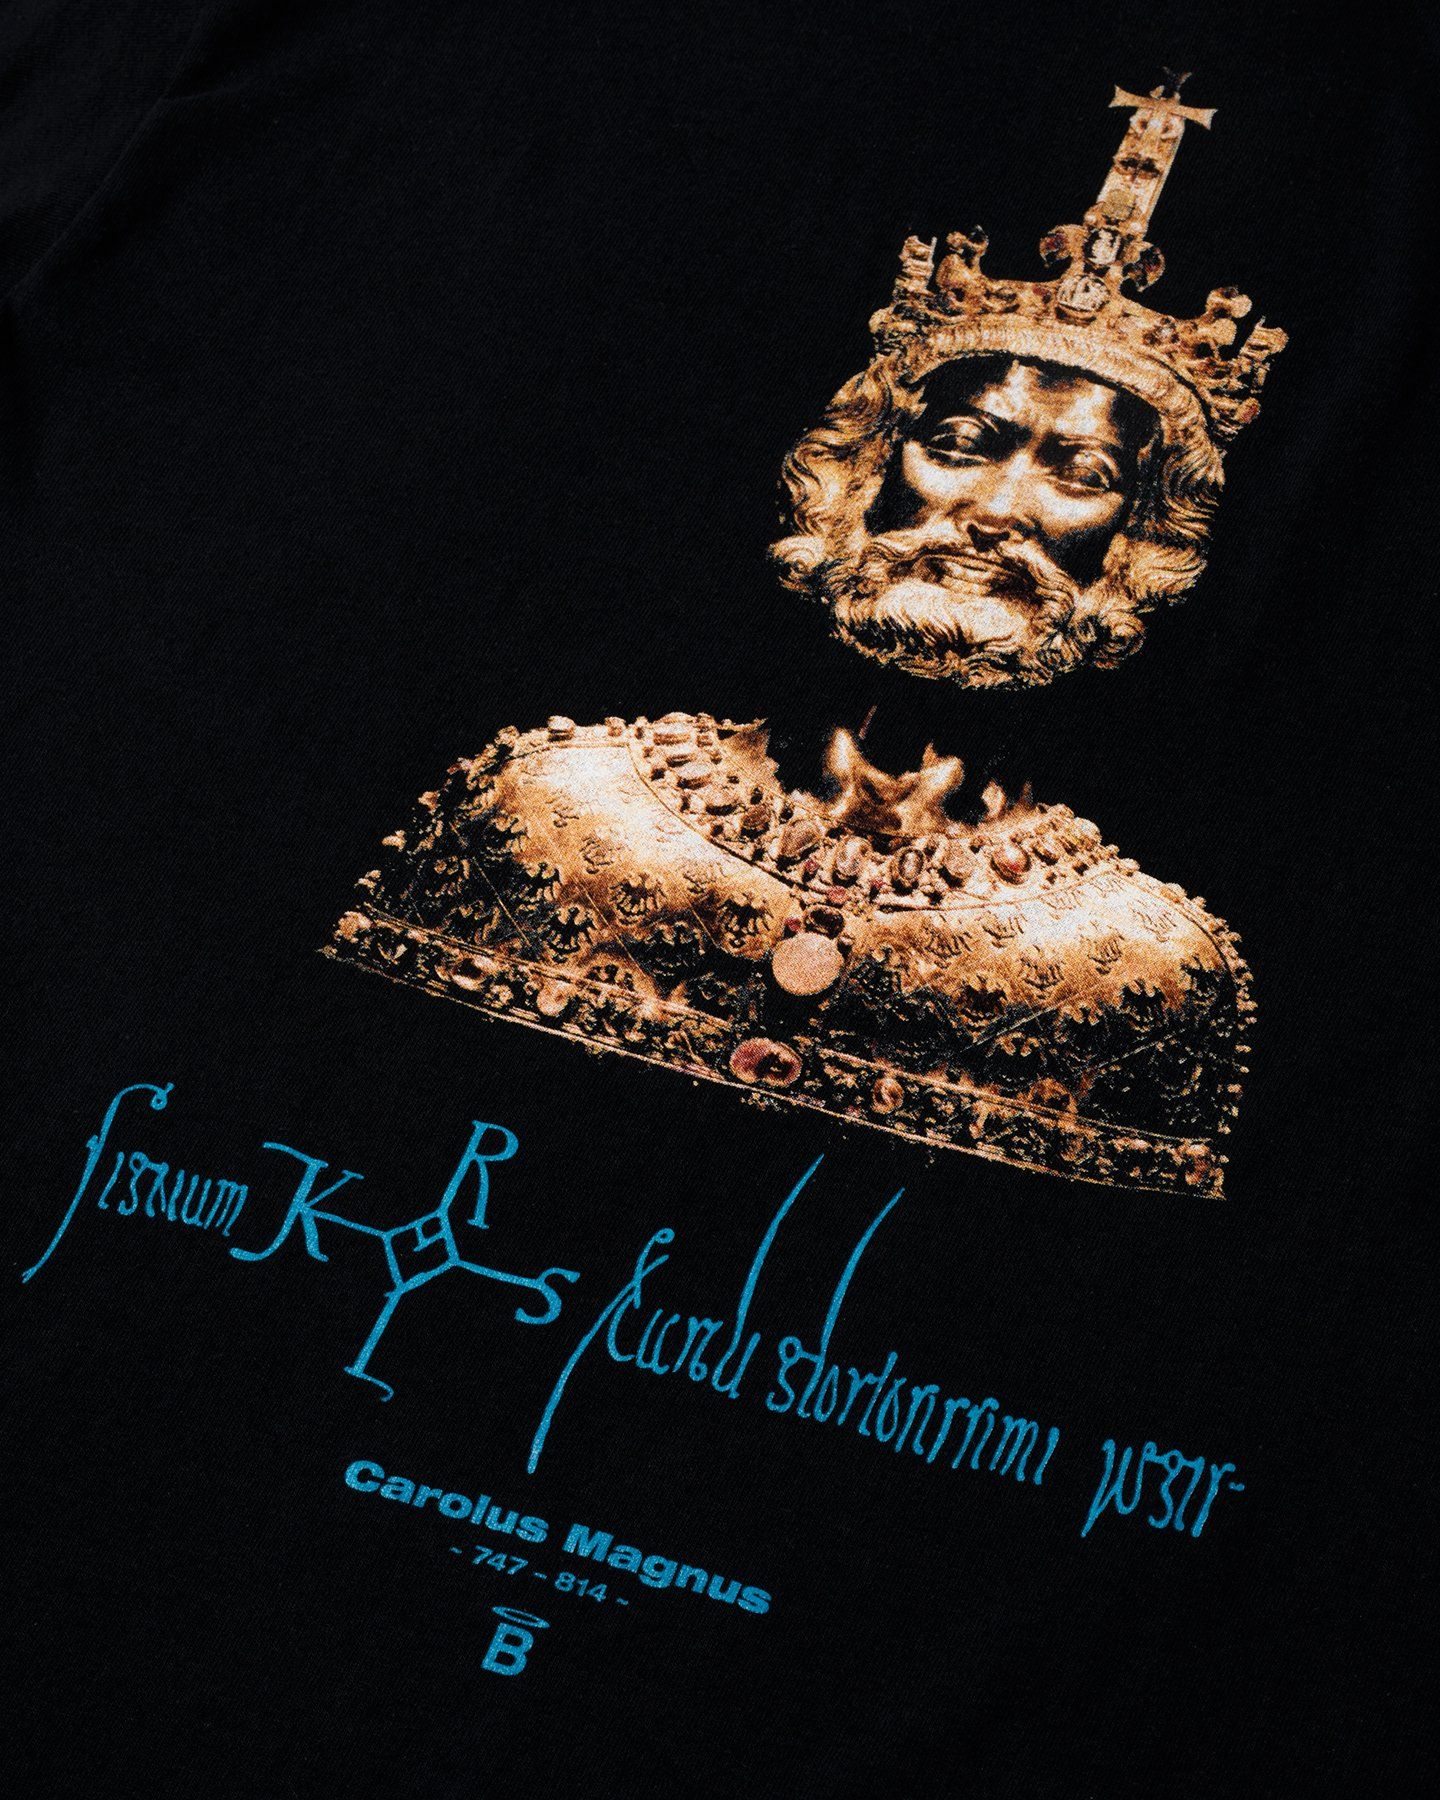 BEINGHUNTED. AS Charlemagne T-Shirt - Image 4